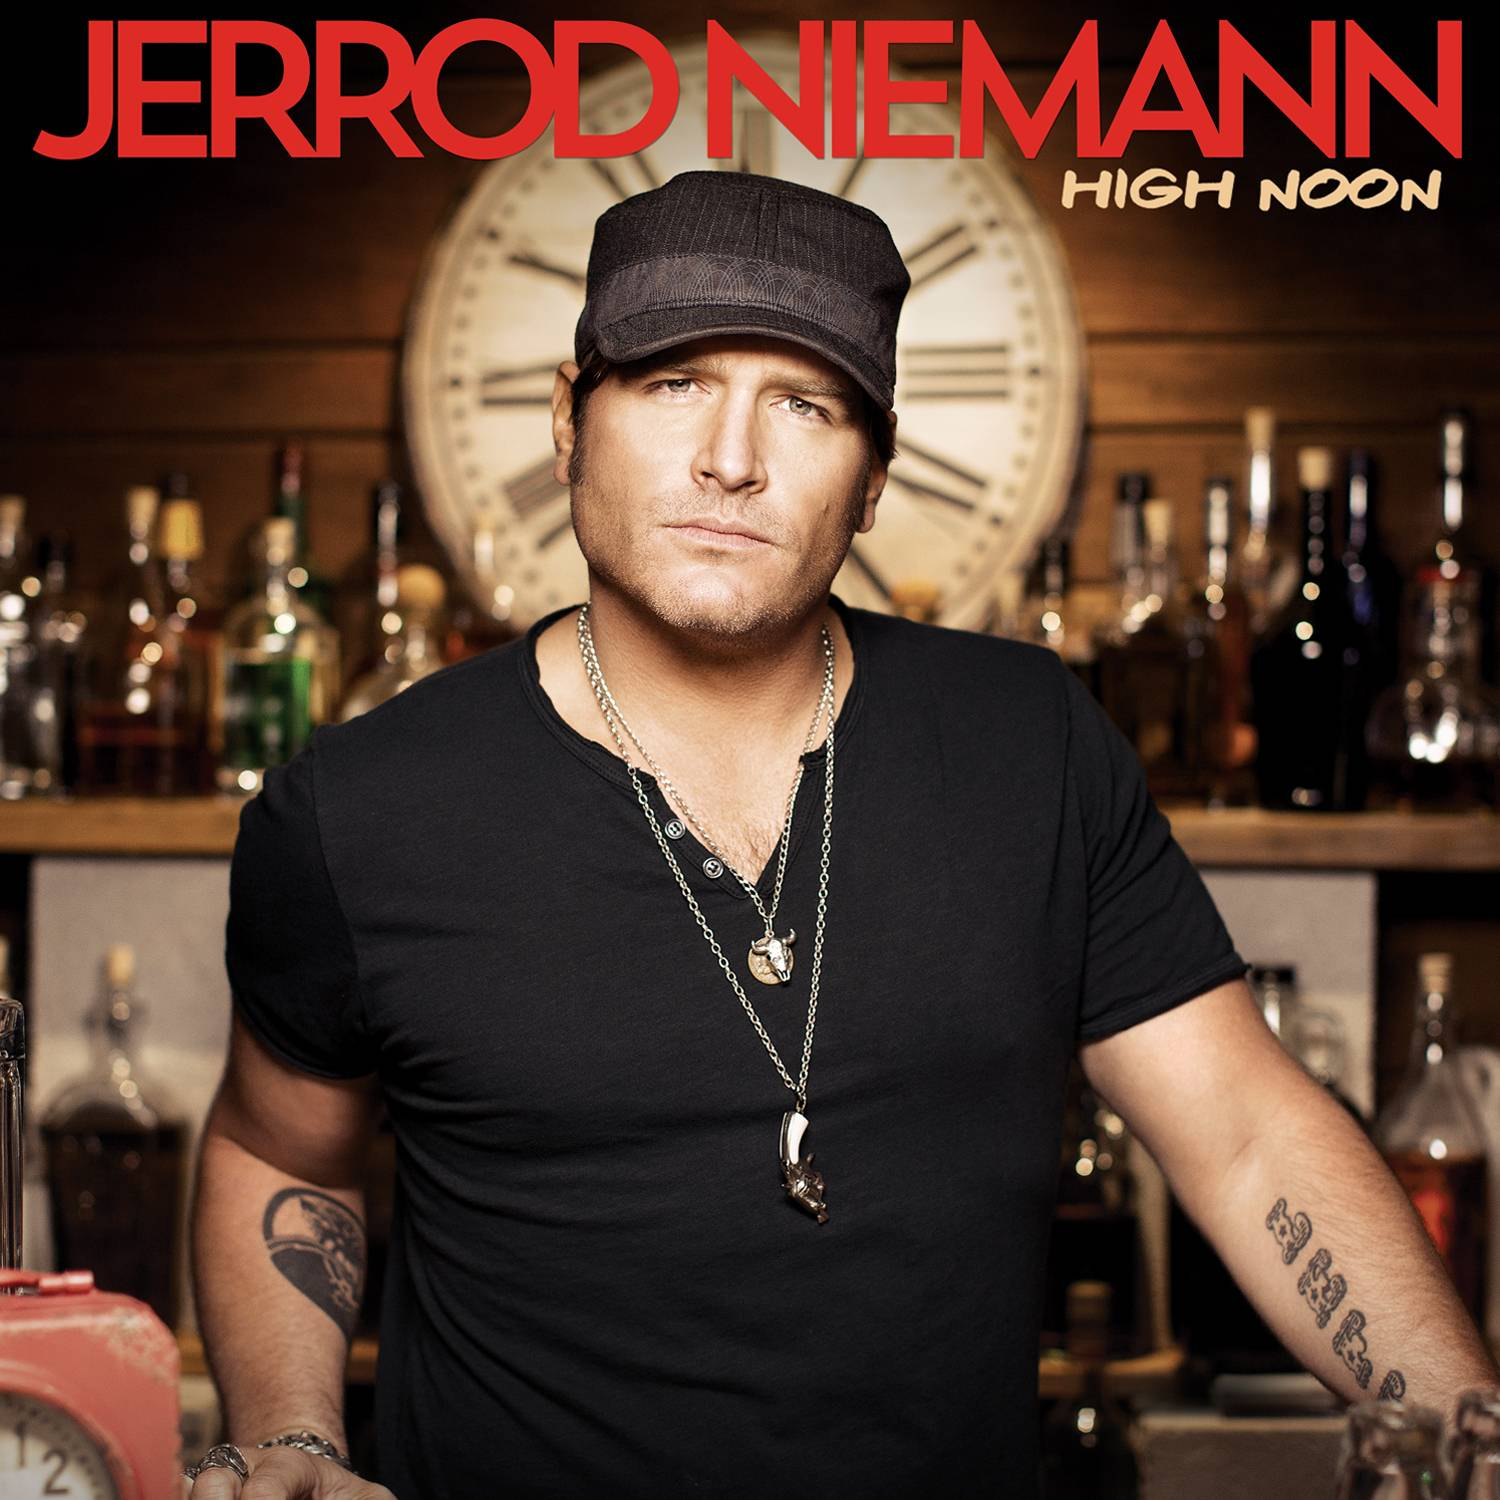 """High Noon"" is the latest from country singer Jerrod Niemann."